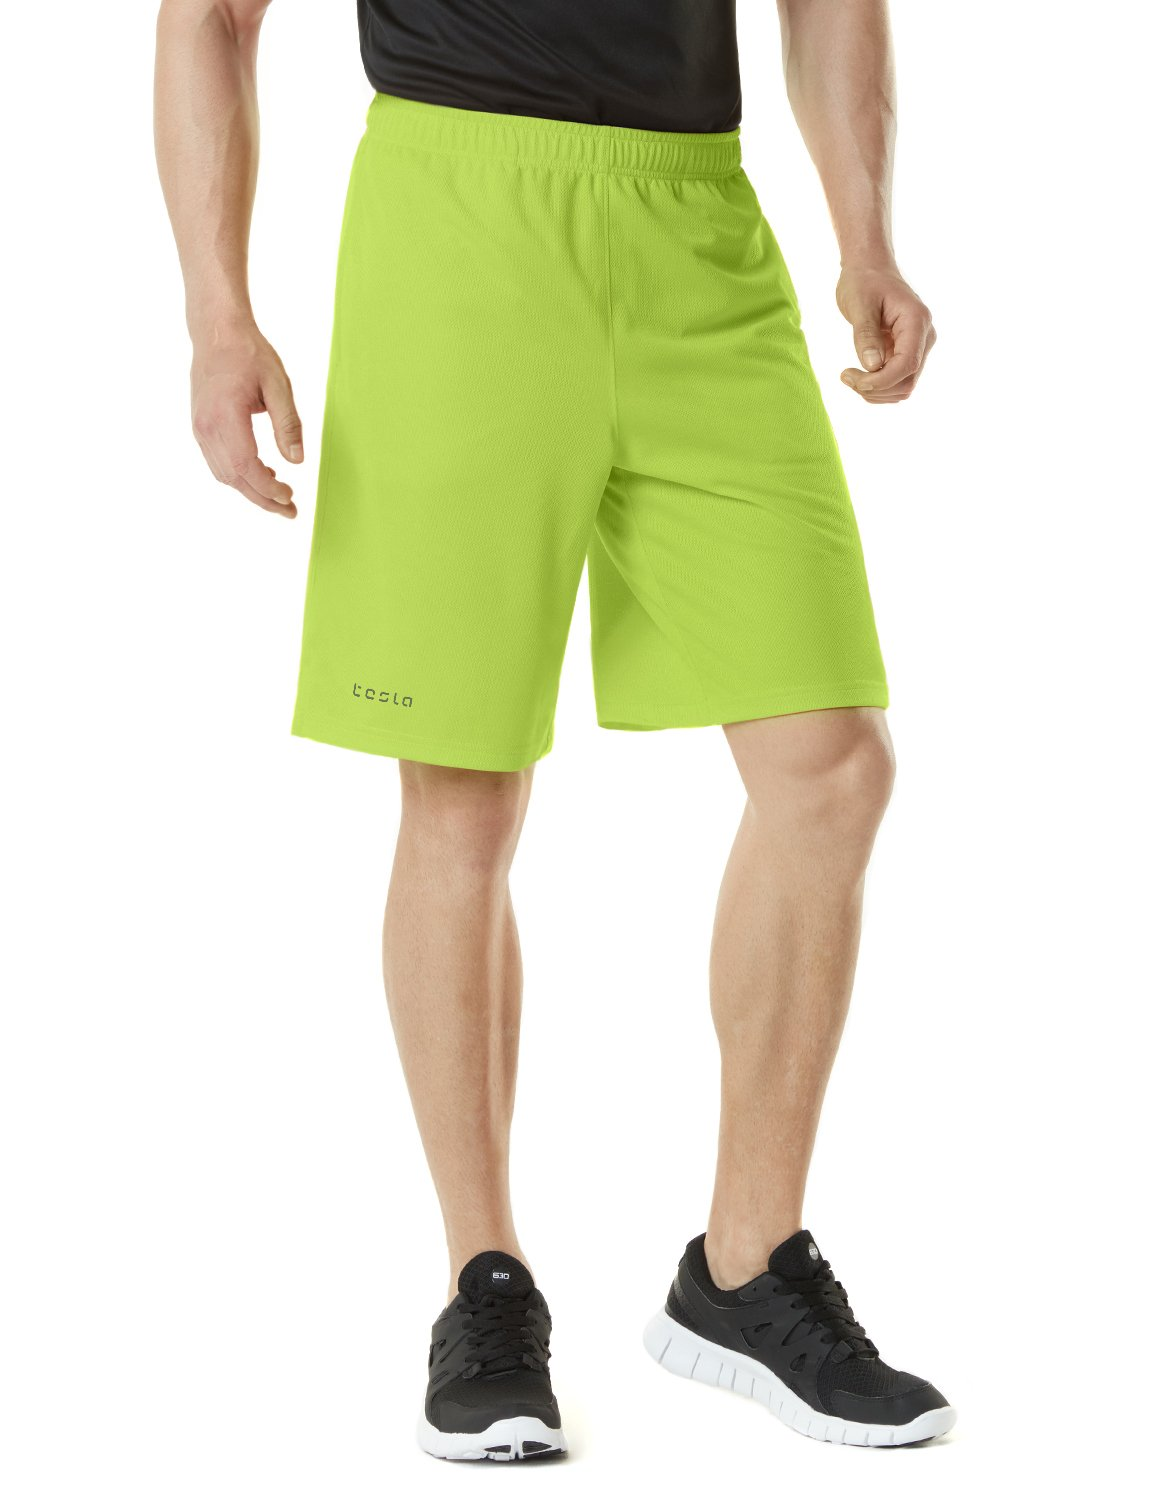 Best Rated in Men's Basketball Shorts & Helpful Customer